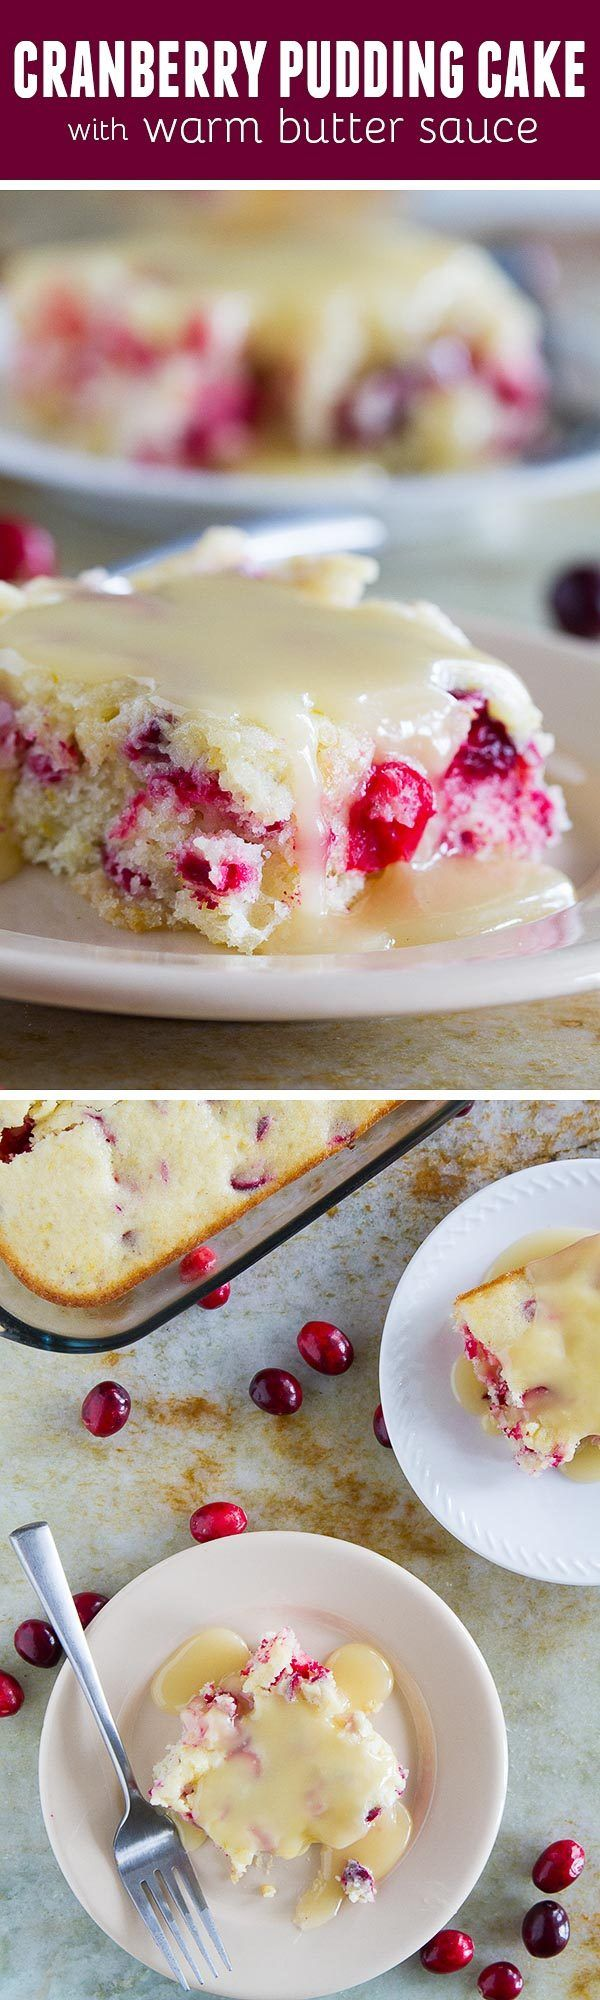 Simple and rustic, this Cranberry Pudding Cake is a homestyle cake loaded with fresh cranberries and a hint of orange. Top with a warm butter sauce for the ultimate holiday cake.: